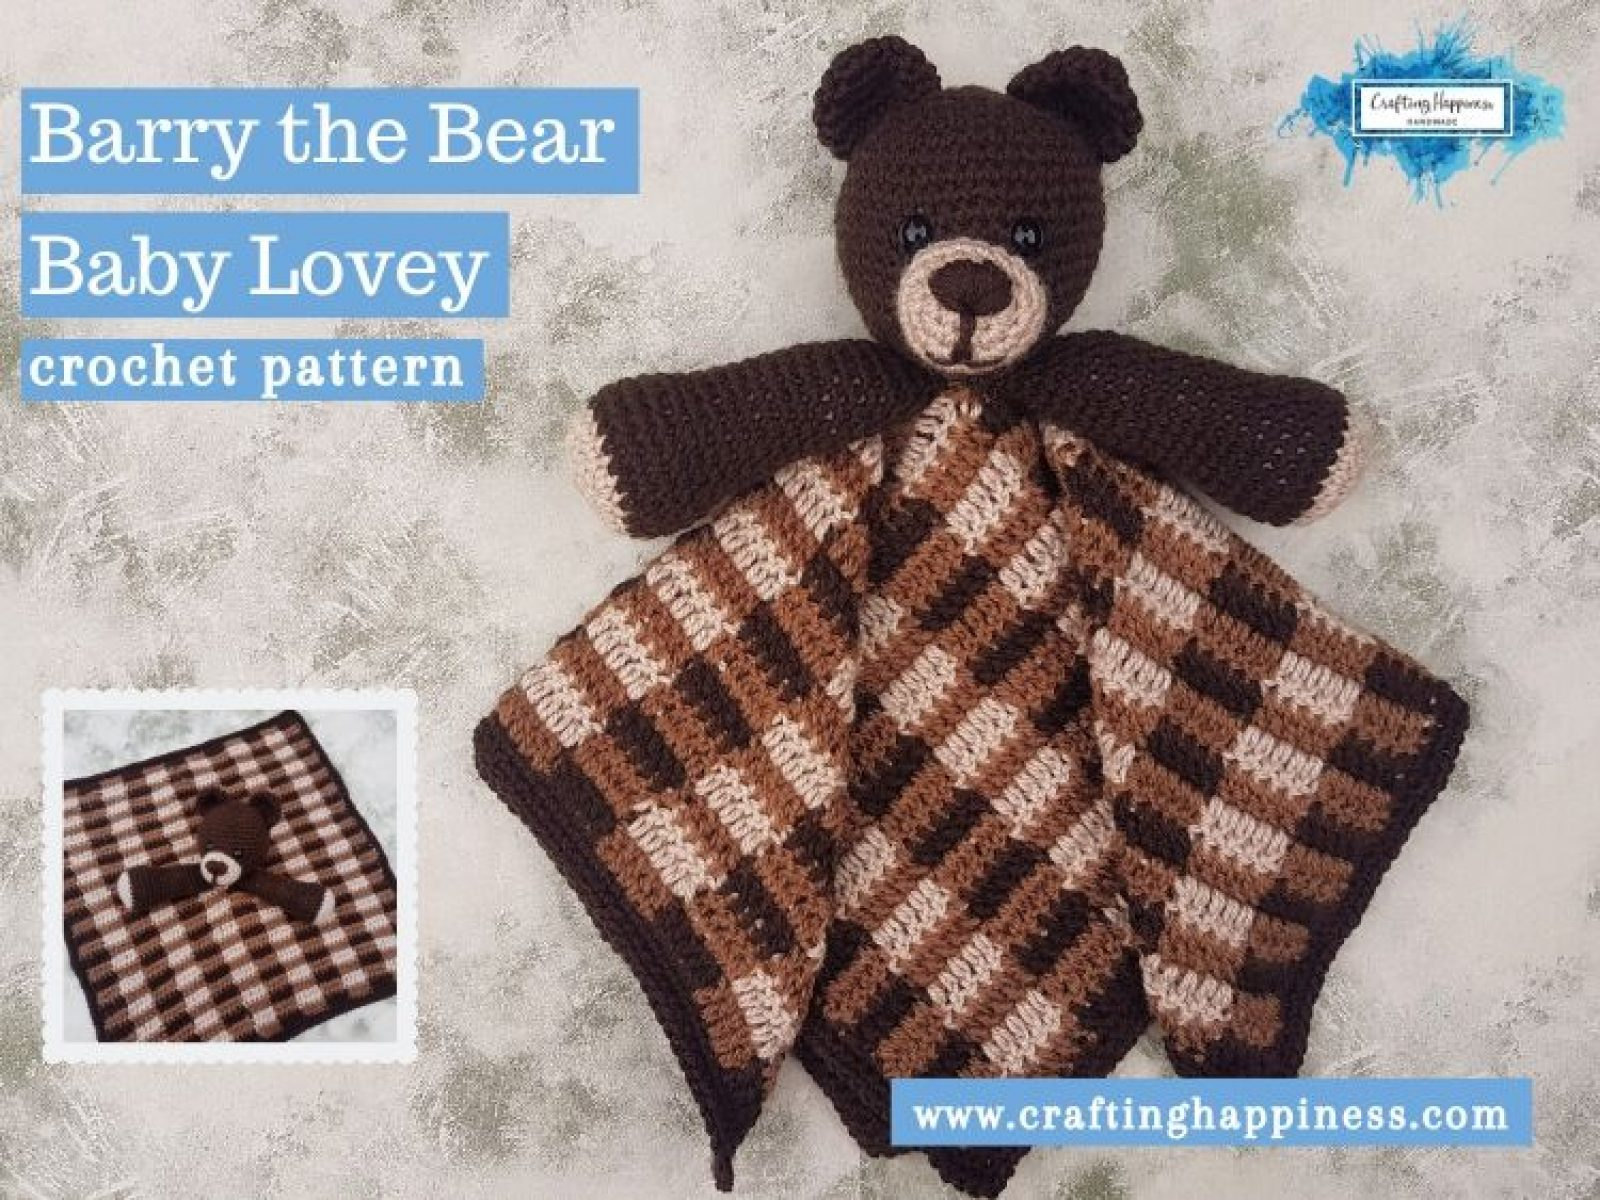 Barry the Bear Baby Lovey by Crafting Happiness FACEBOOK POSTER